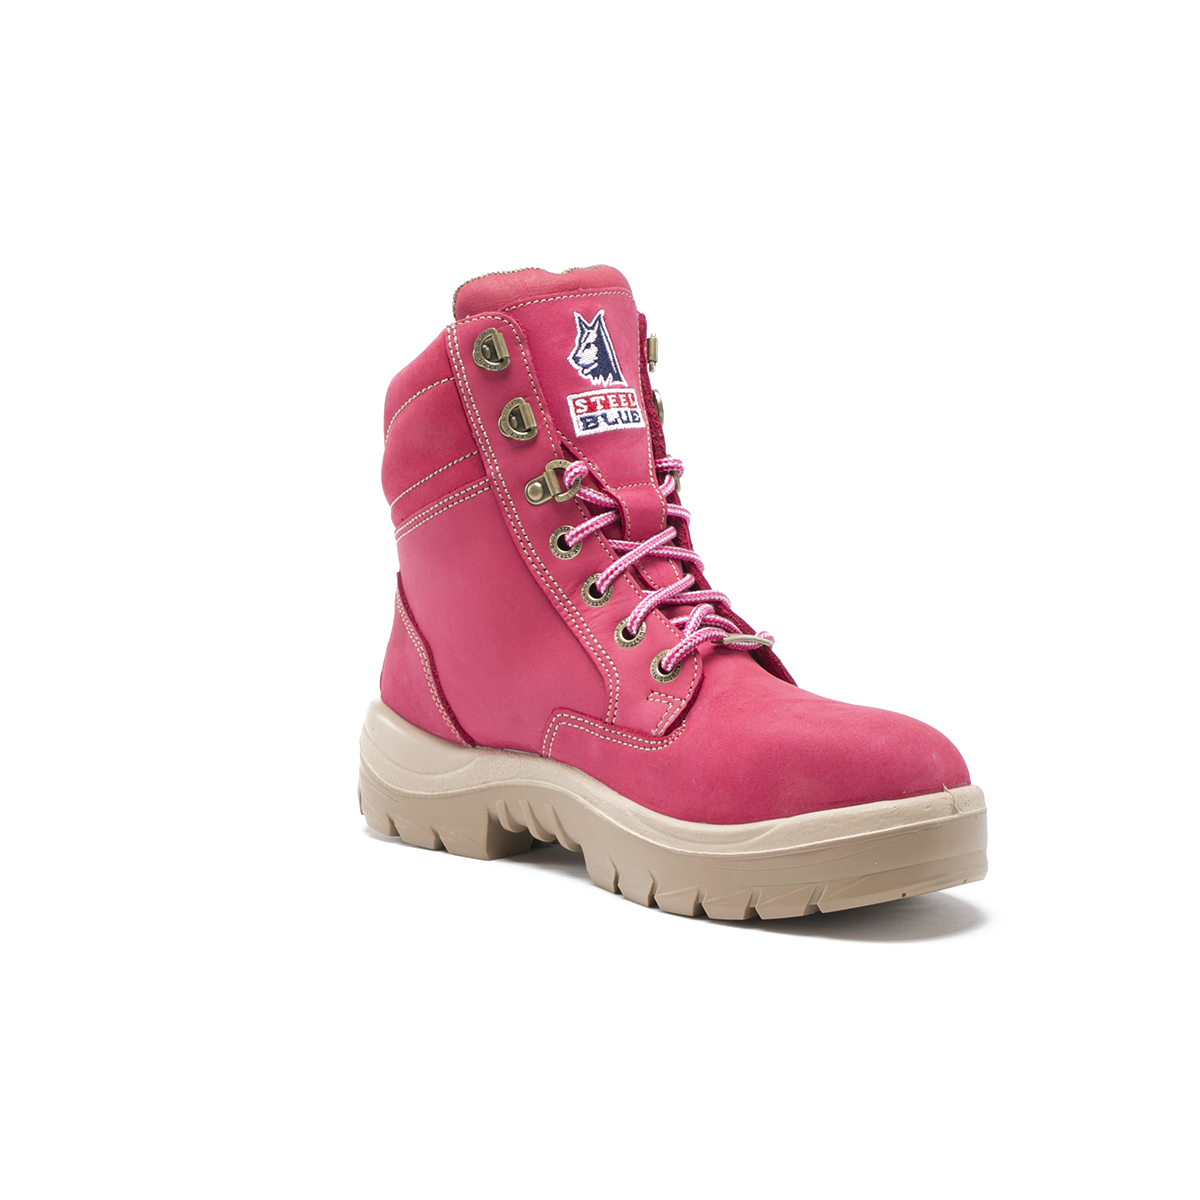 Southern Cross Ladies Pink Work Boots